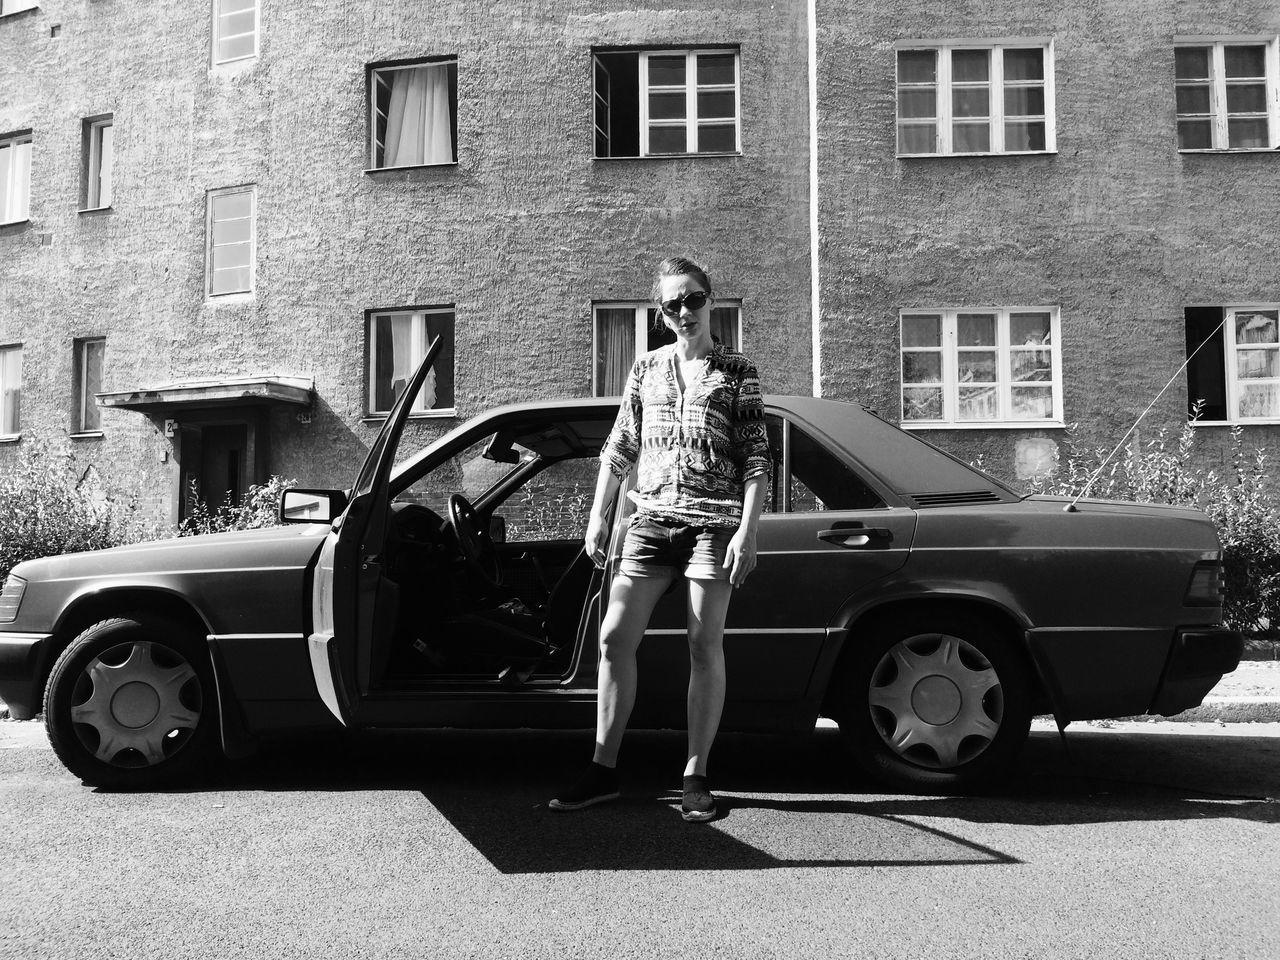 Car DDR Gangster Style Hood Me And My Car Real People Side View Street Street Photography Black And White Blackandwhite Berlin